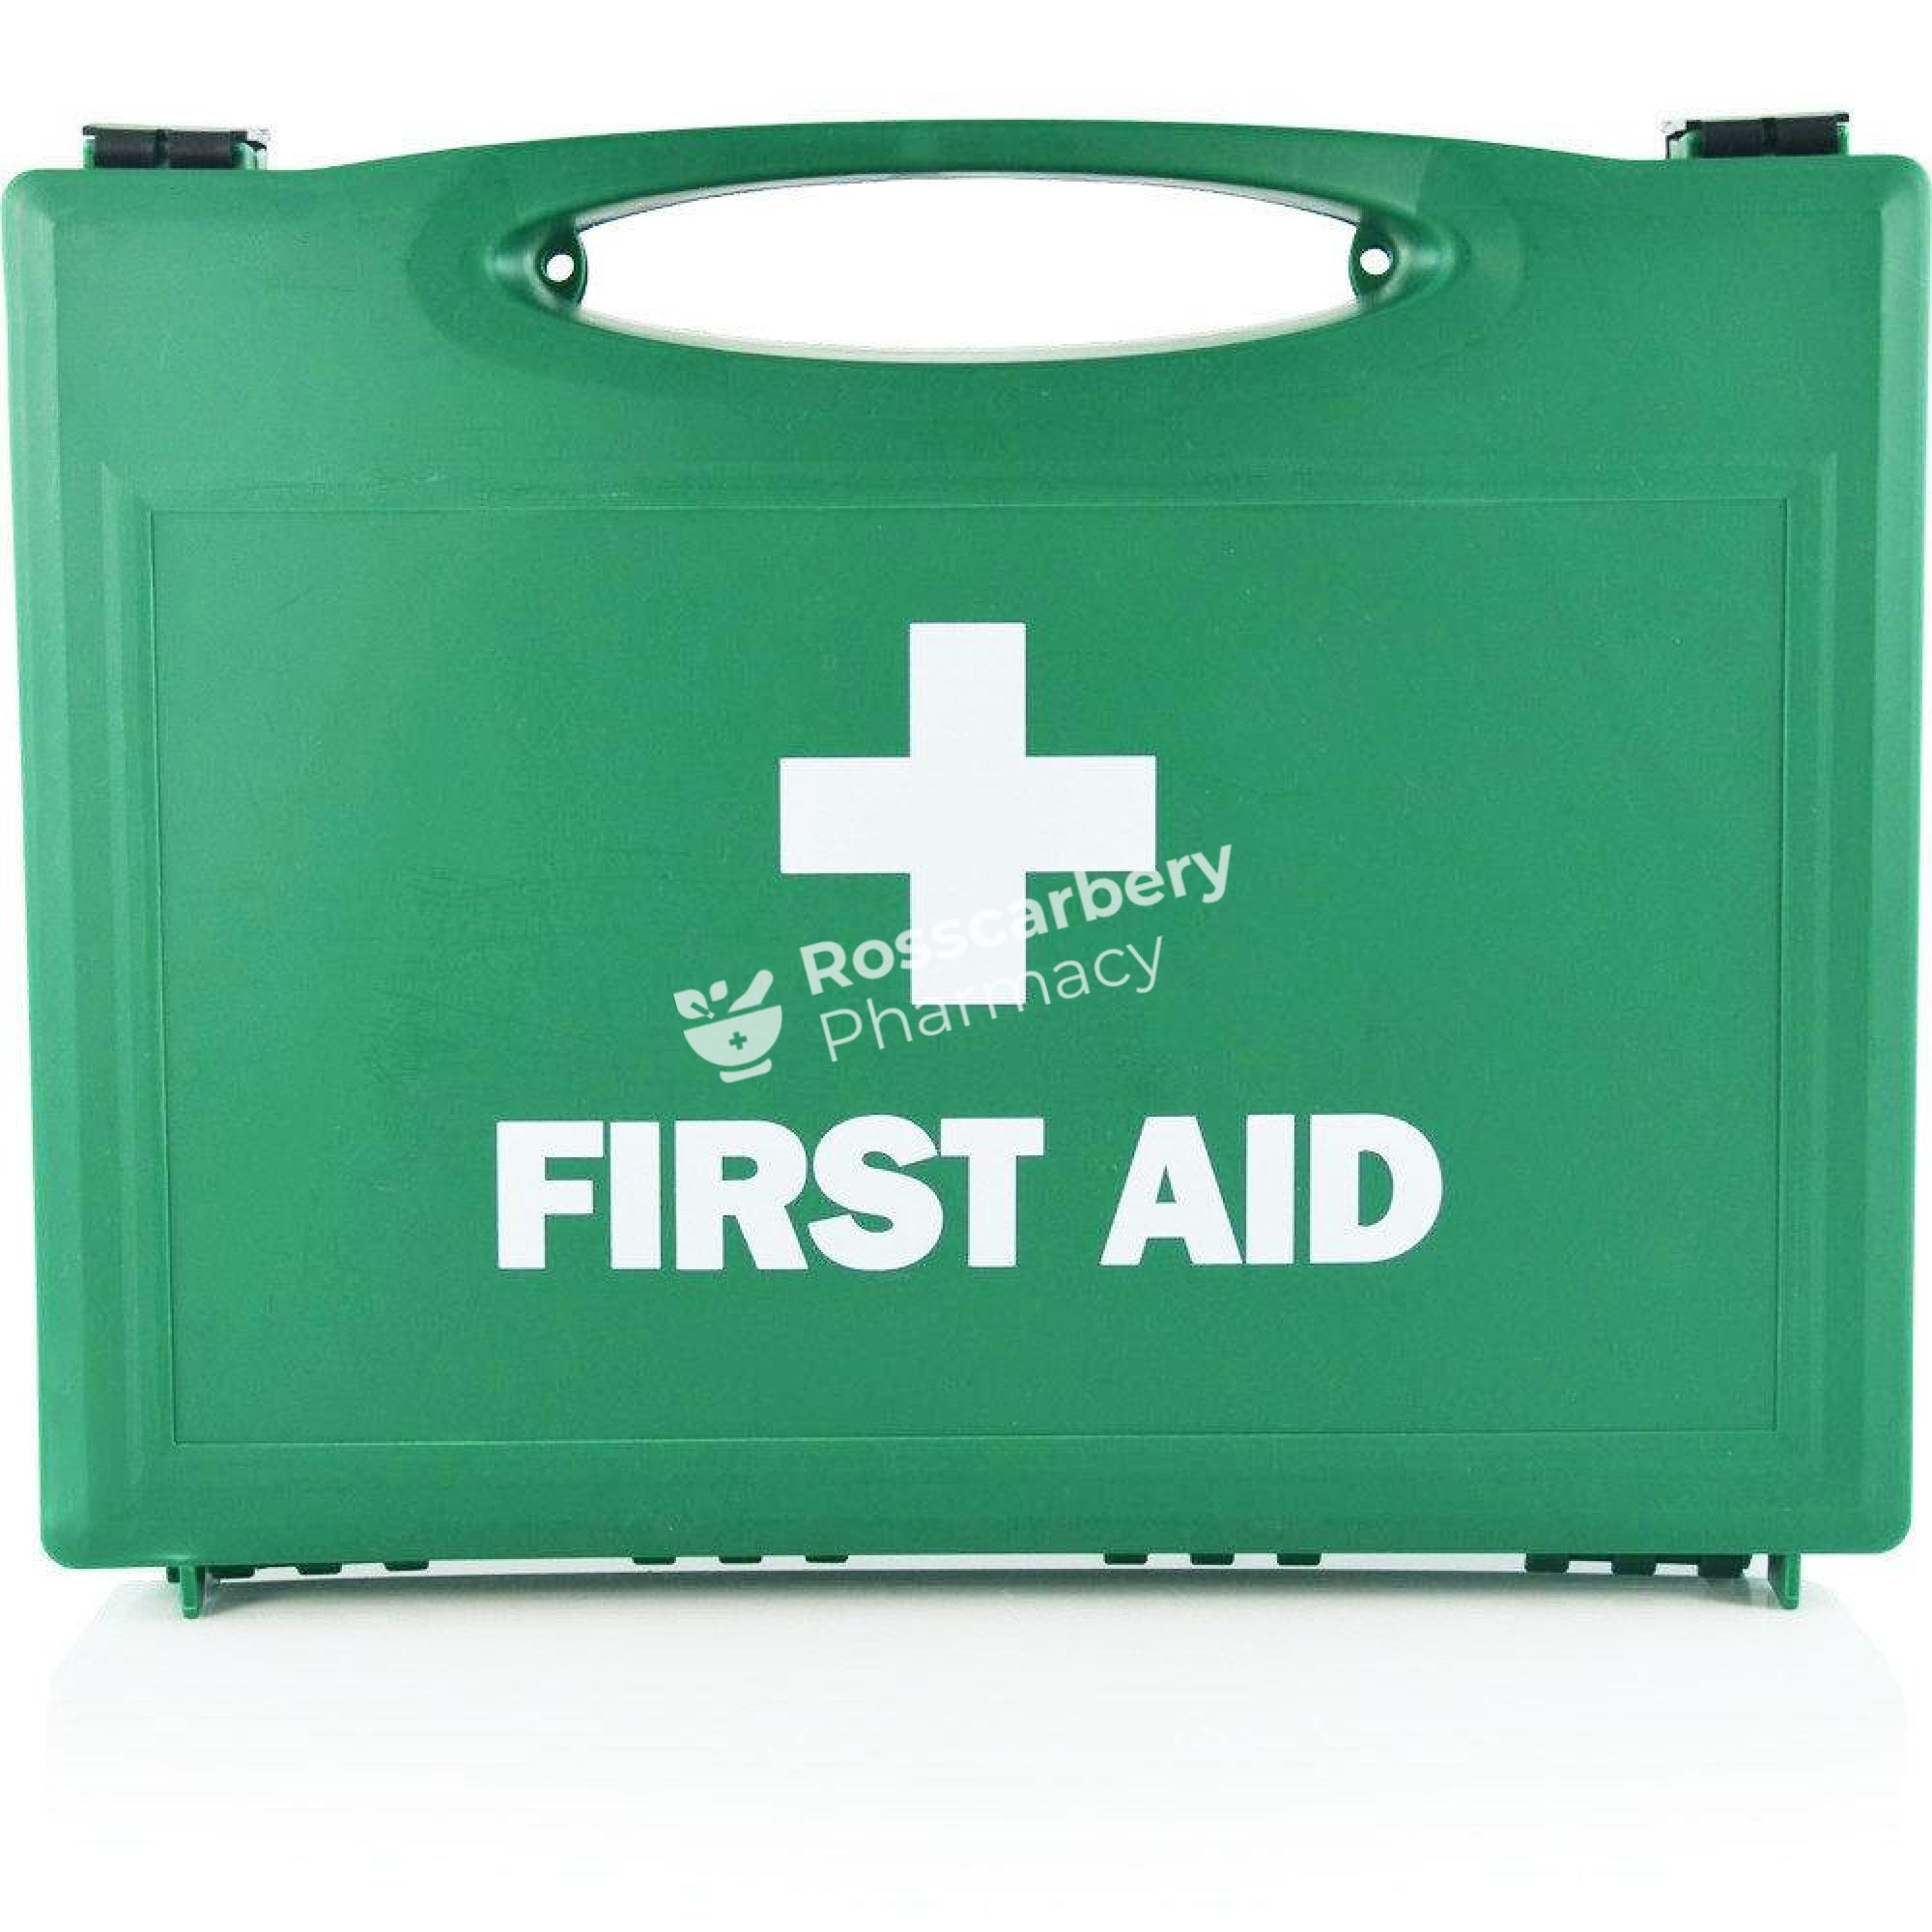 First Aid Box Empty - Large Accessories